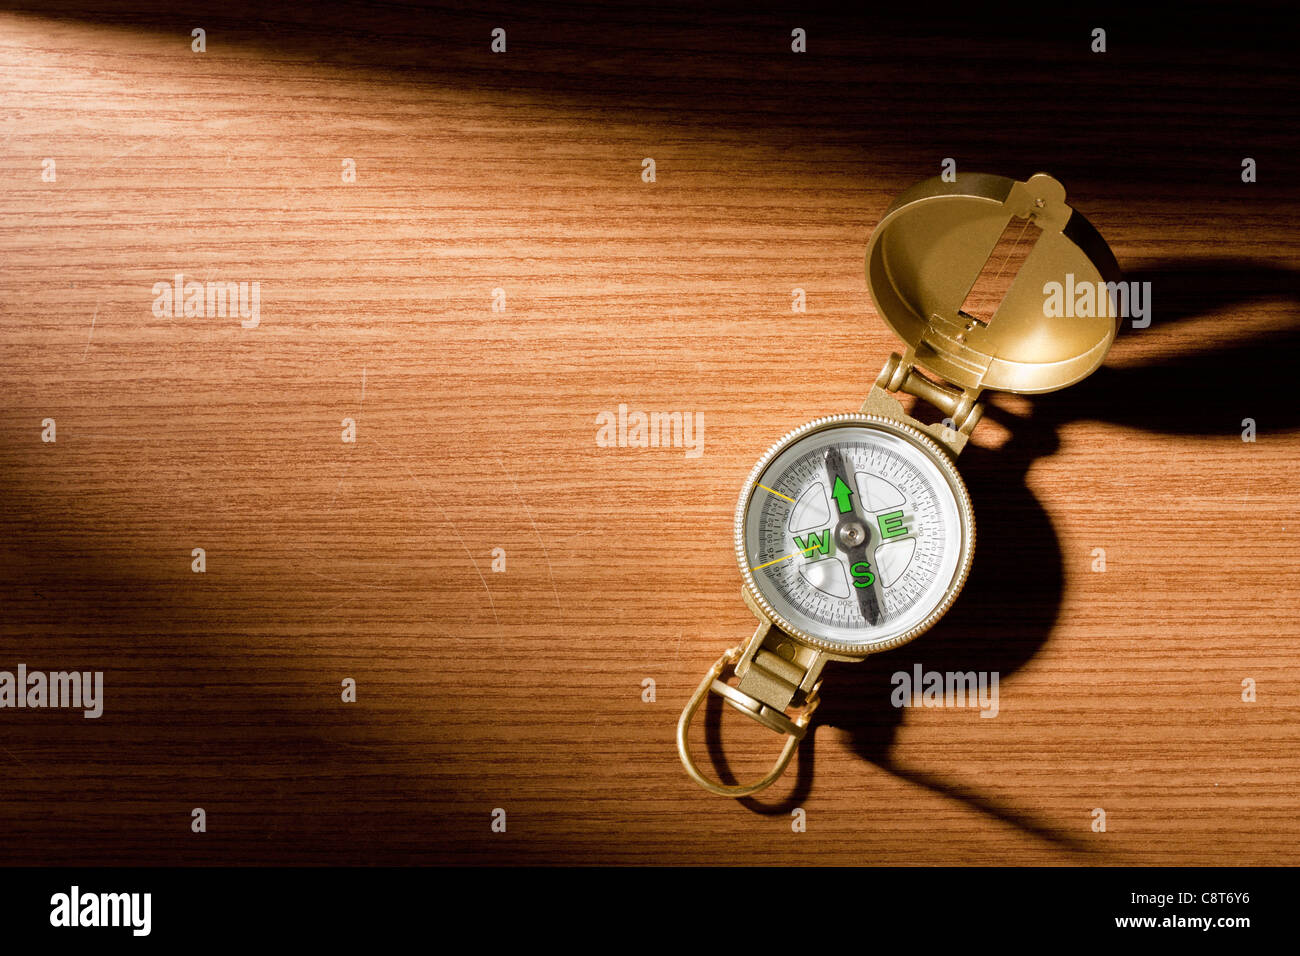 Compass on Wood - Stock Image